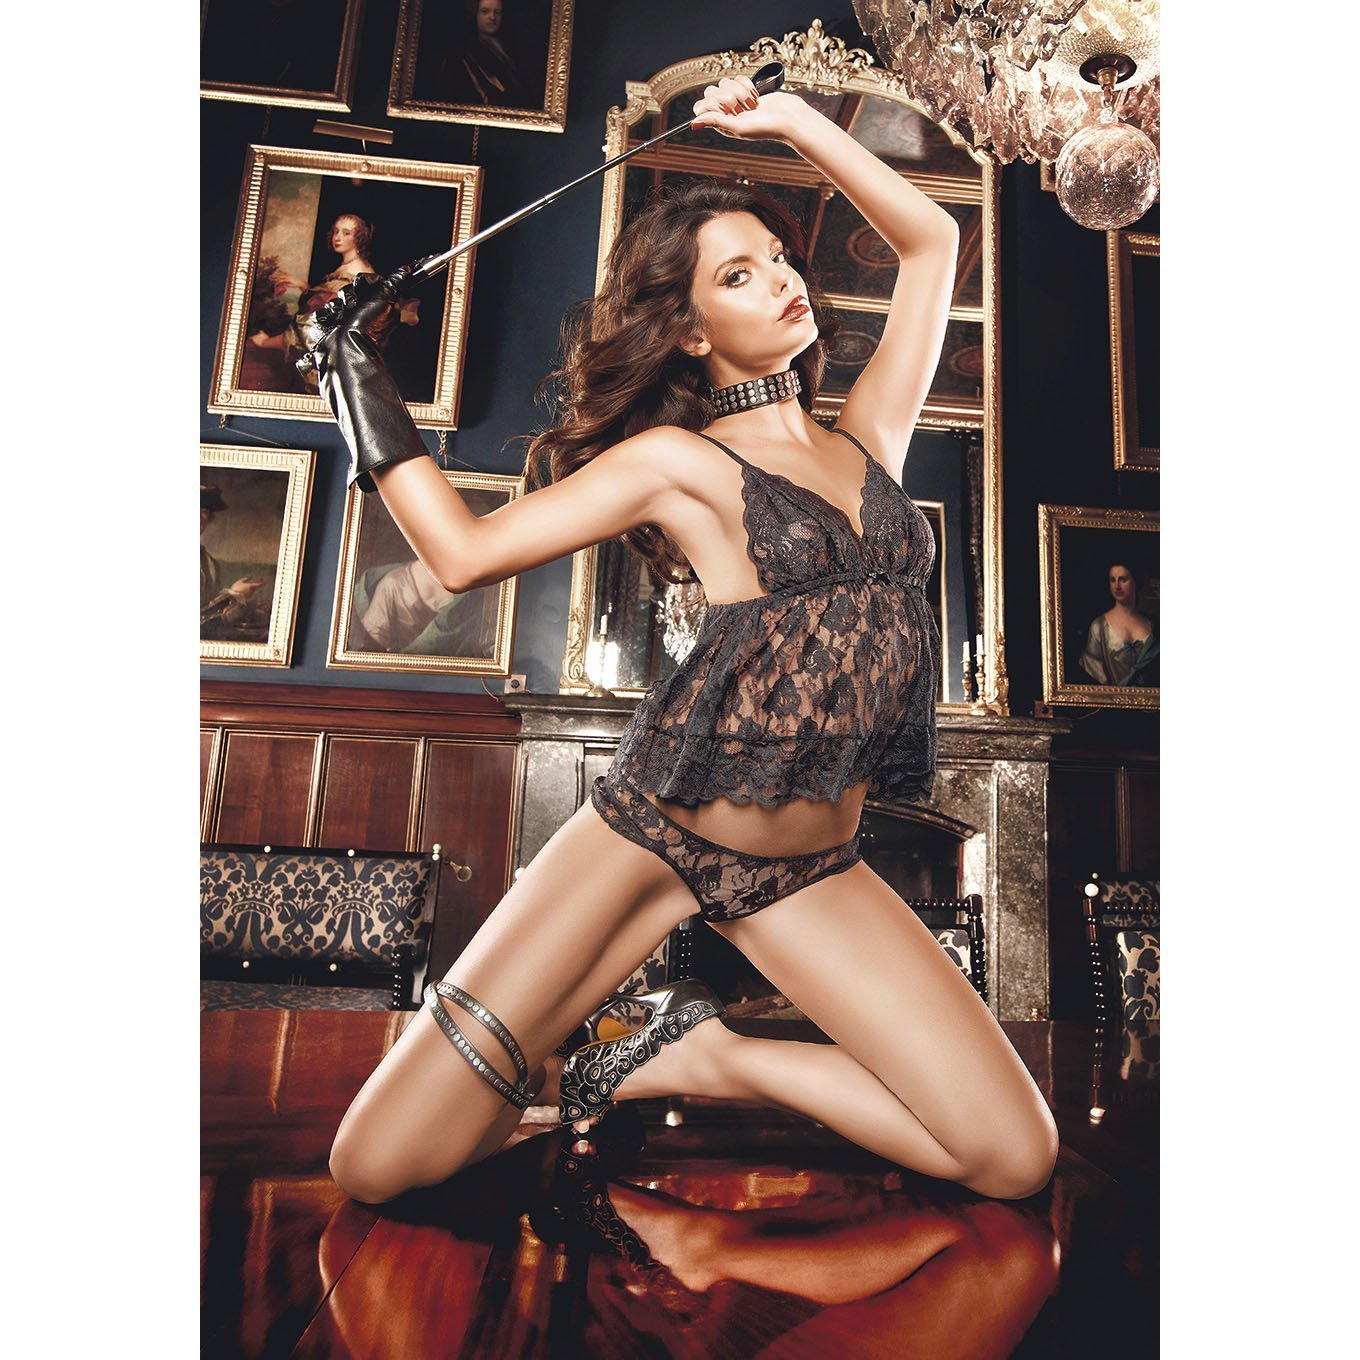 Baci - Flower Lace Babydoll Lingerie One Size (Black) | CherryAffairs Singapore